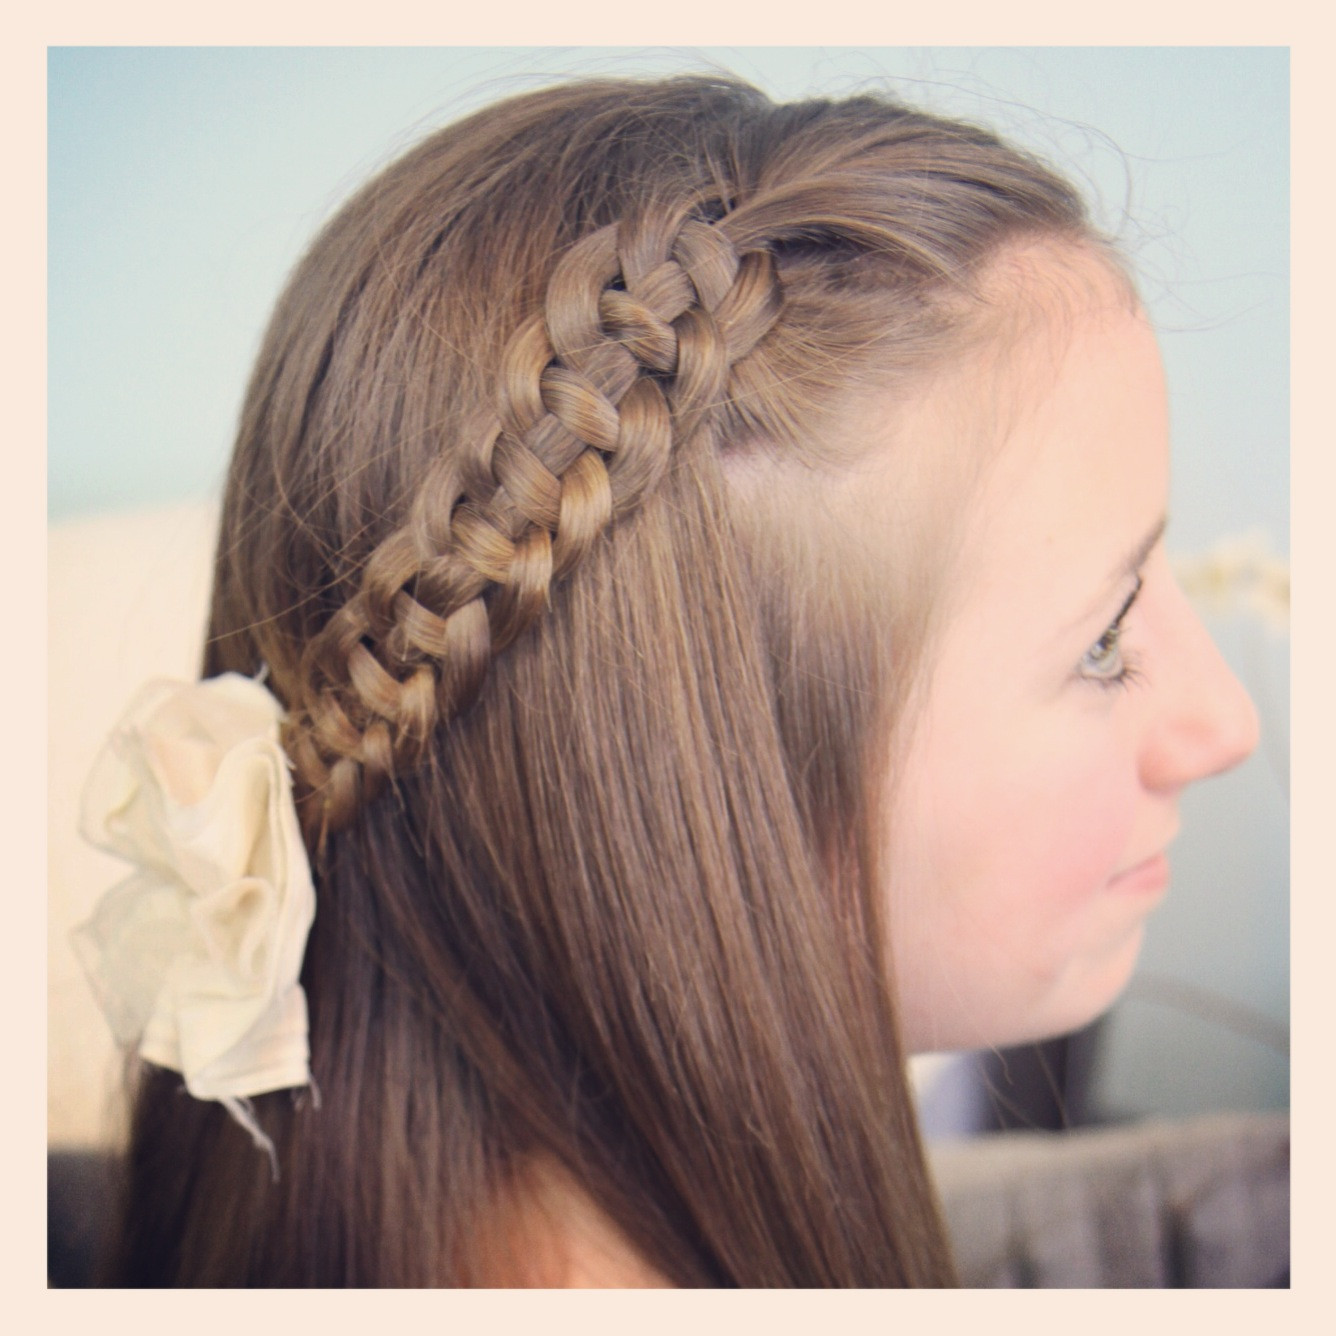 Best ideas about Pretty Girls Hairstyles . Save or Pin 4 Strand Slide Up Braid Pullback Hairstyles Now.